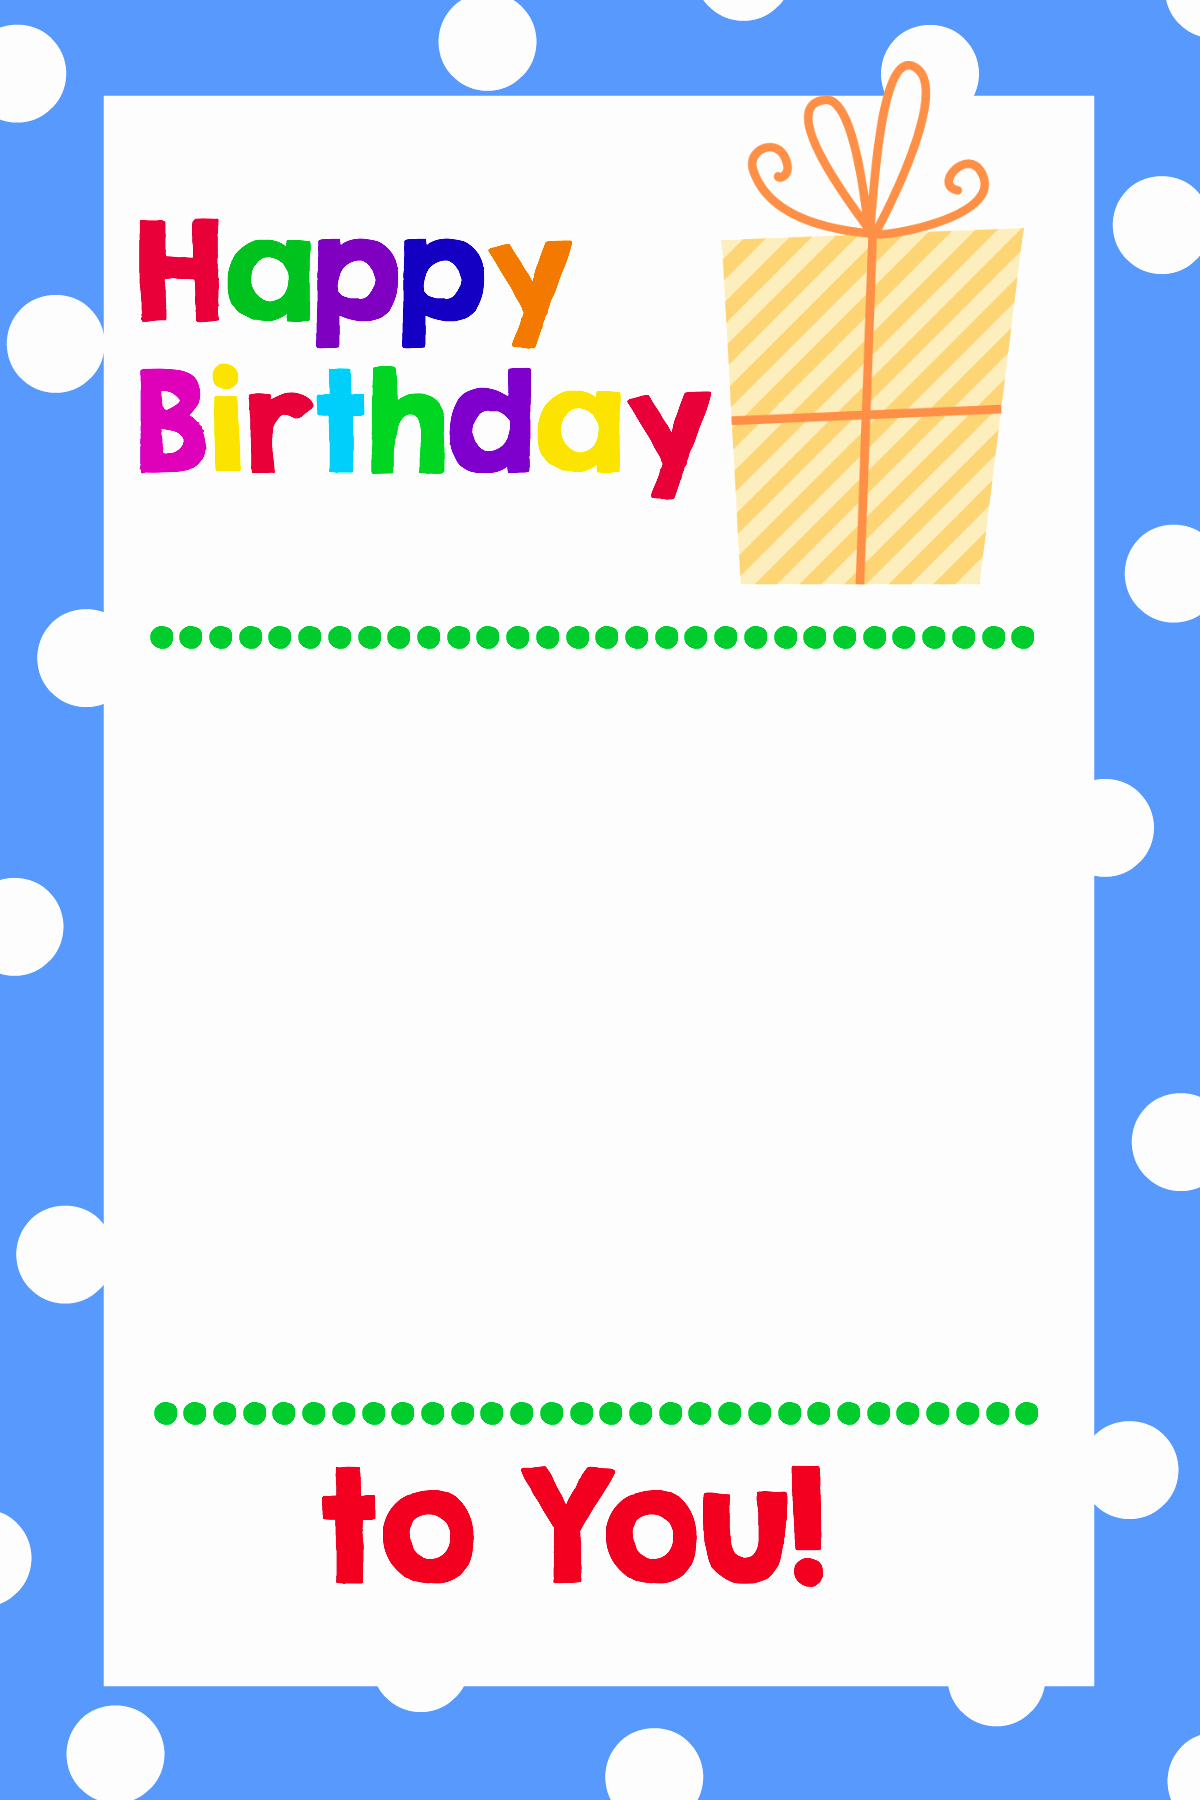 Happy Birthday Card Template Luxury Free Printable Birthday Cards that Hold Gift Cards